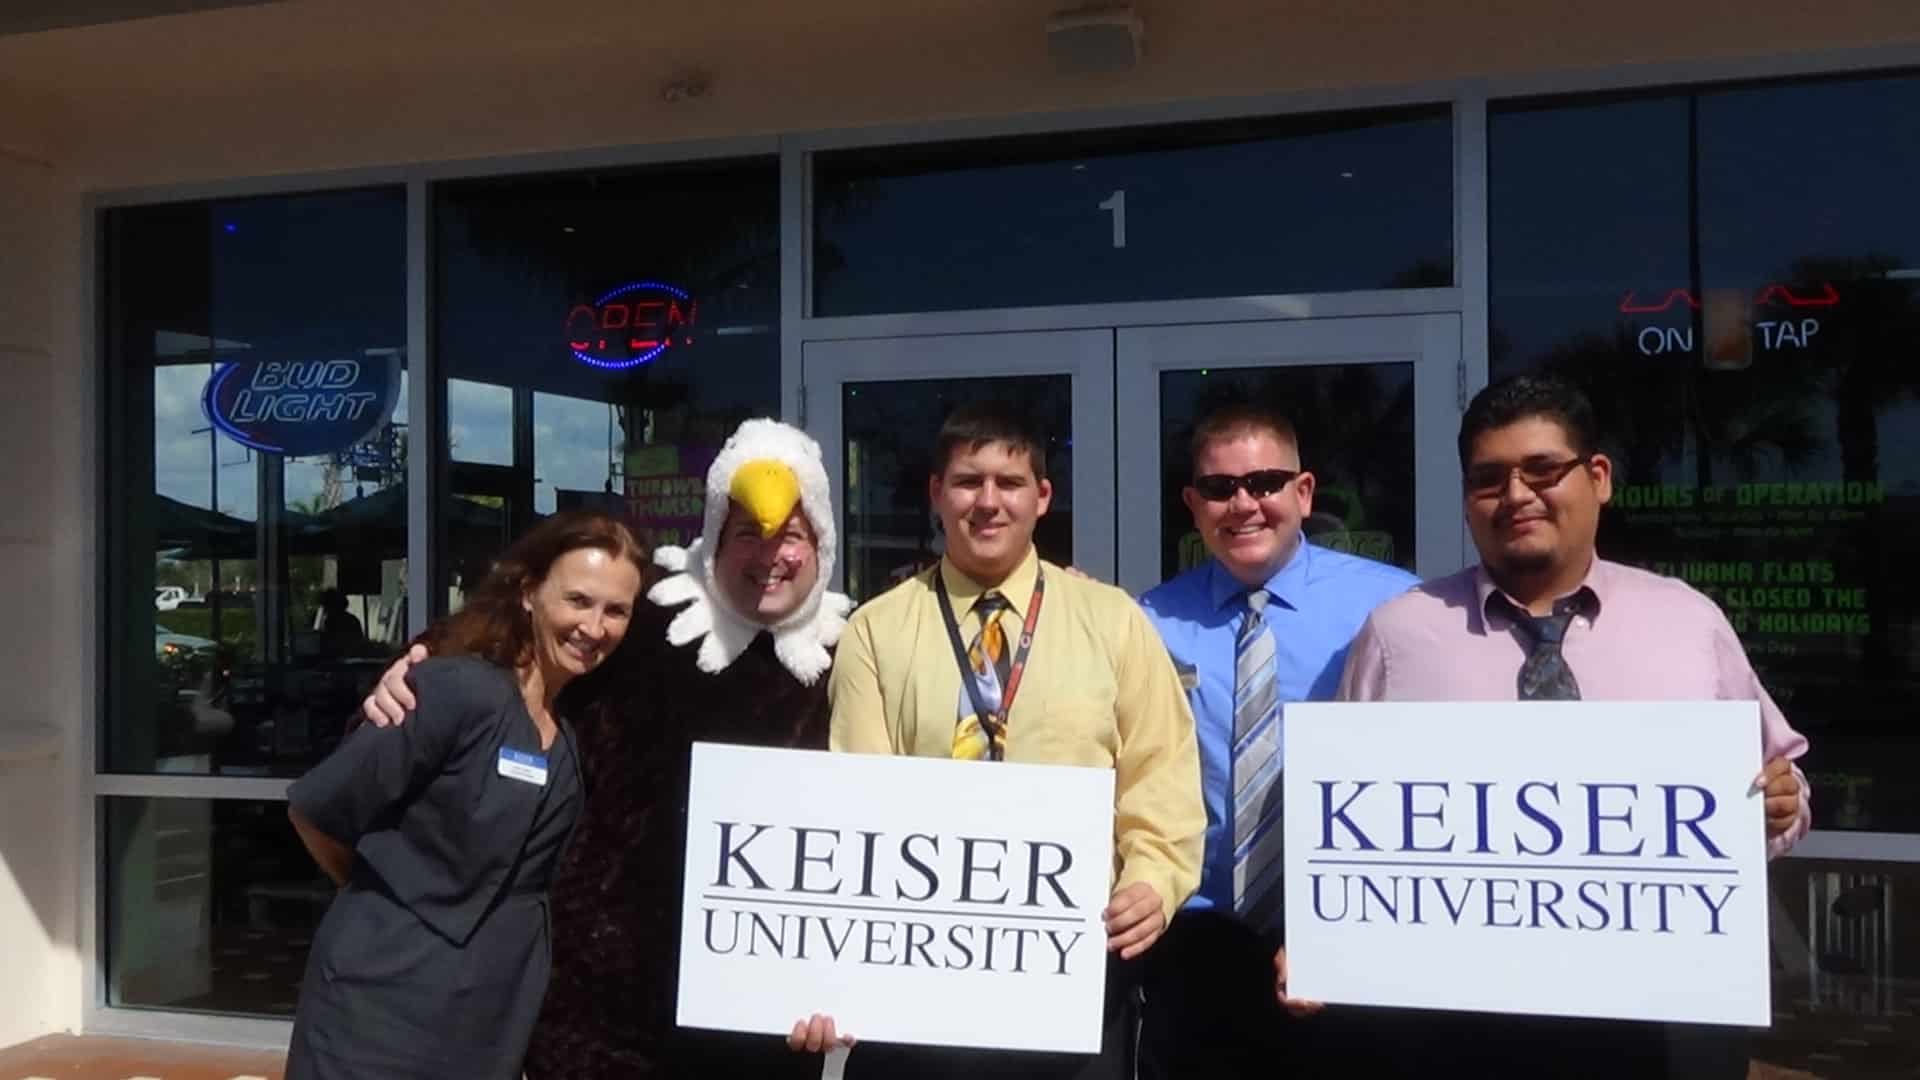 Fort Myers Student Government Association Hosts First KU Spirit Day Event